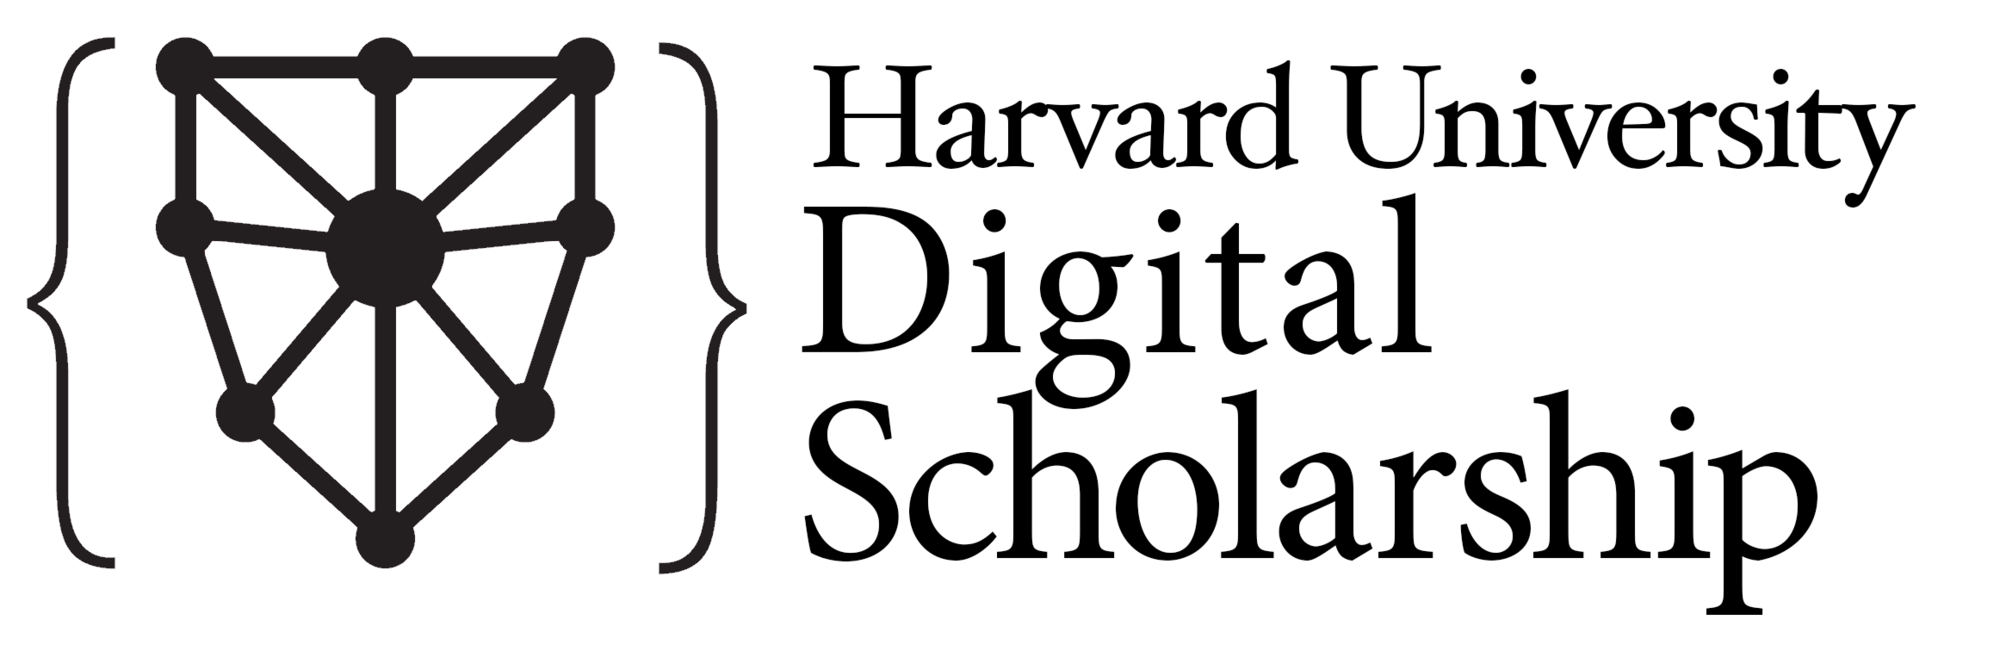 Harvard University Digital Scholarship logo